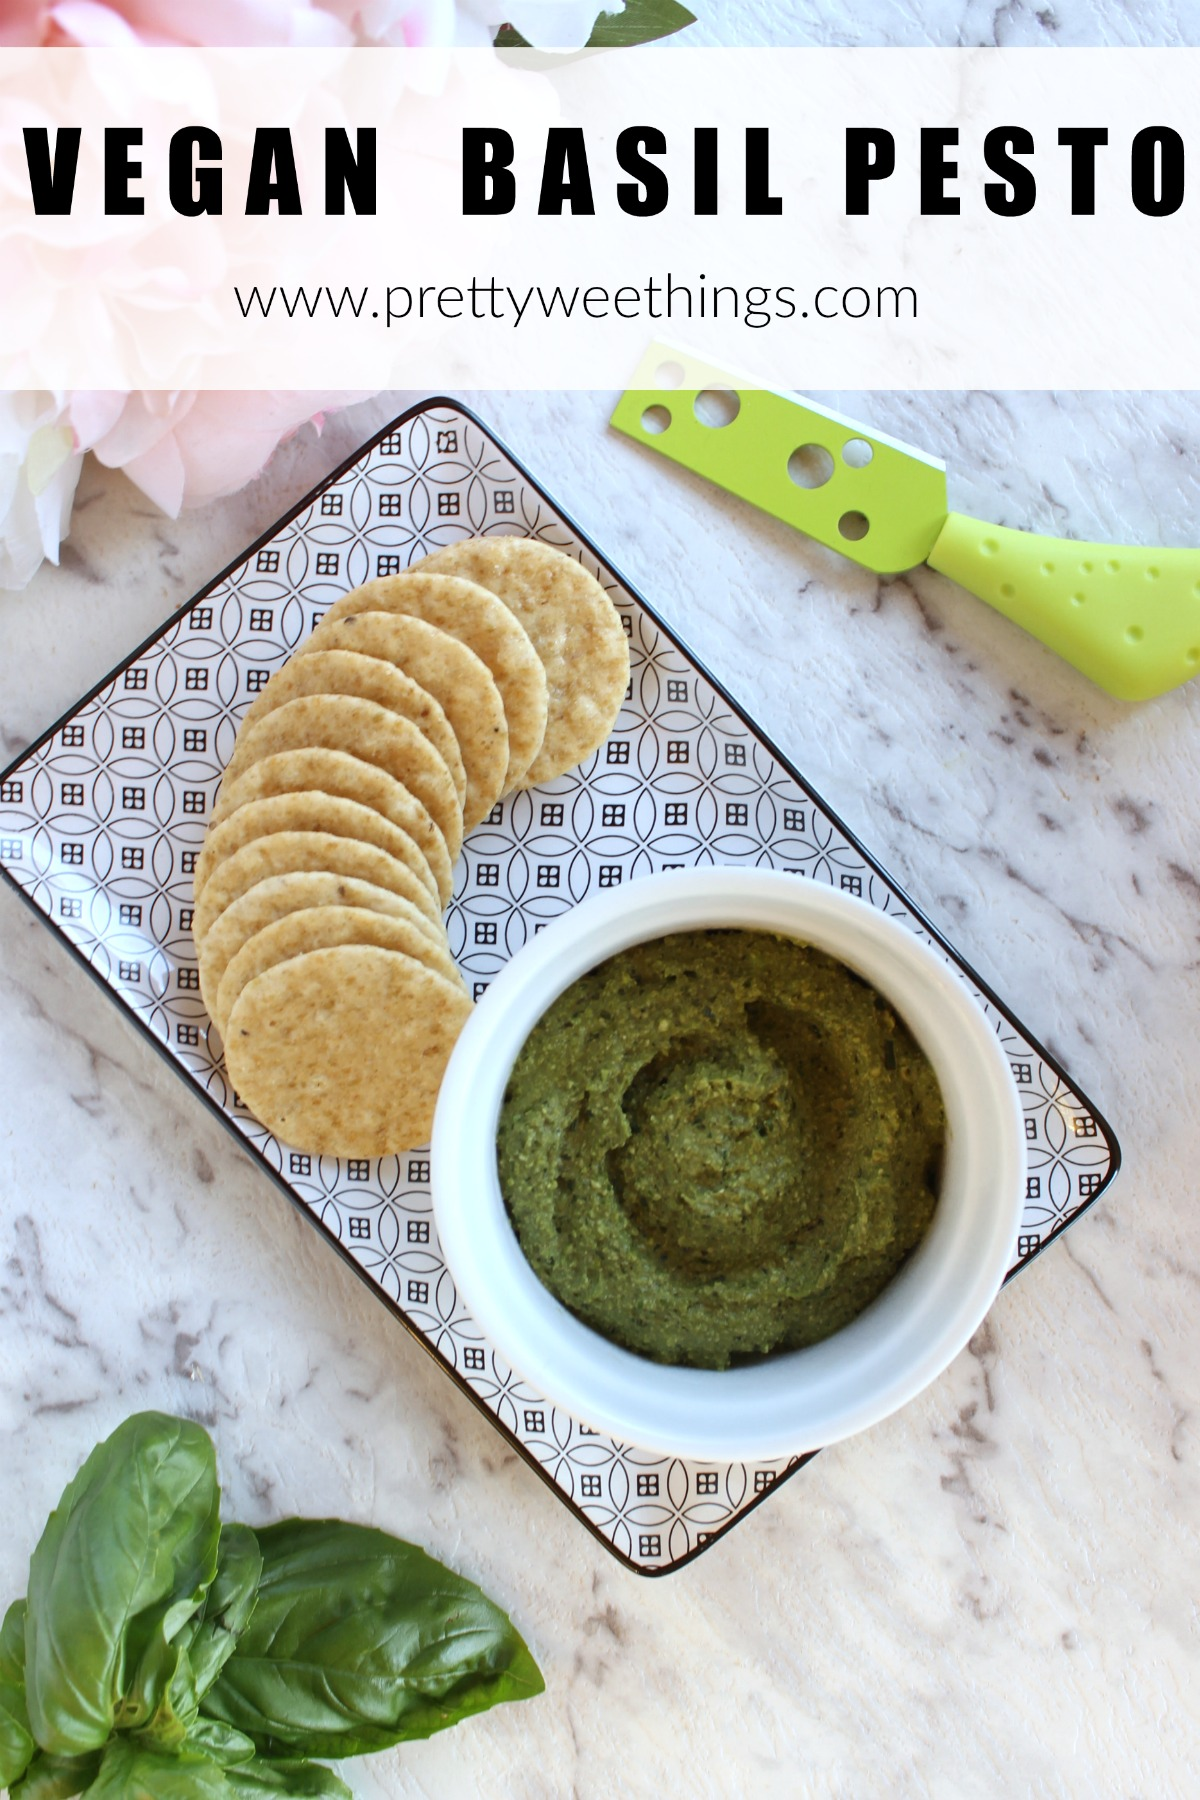 A delicious and nutritious vegan basil pesto, perfect for those avoiding dairy. Simple to make and delicious to eat. You won't notice it's dairy free!